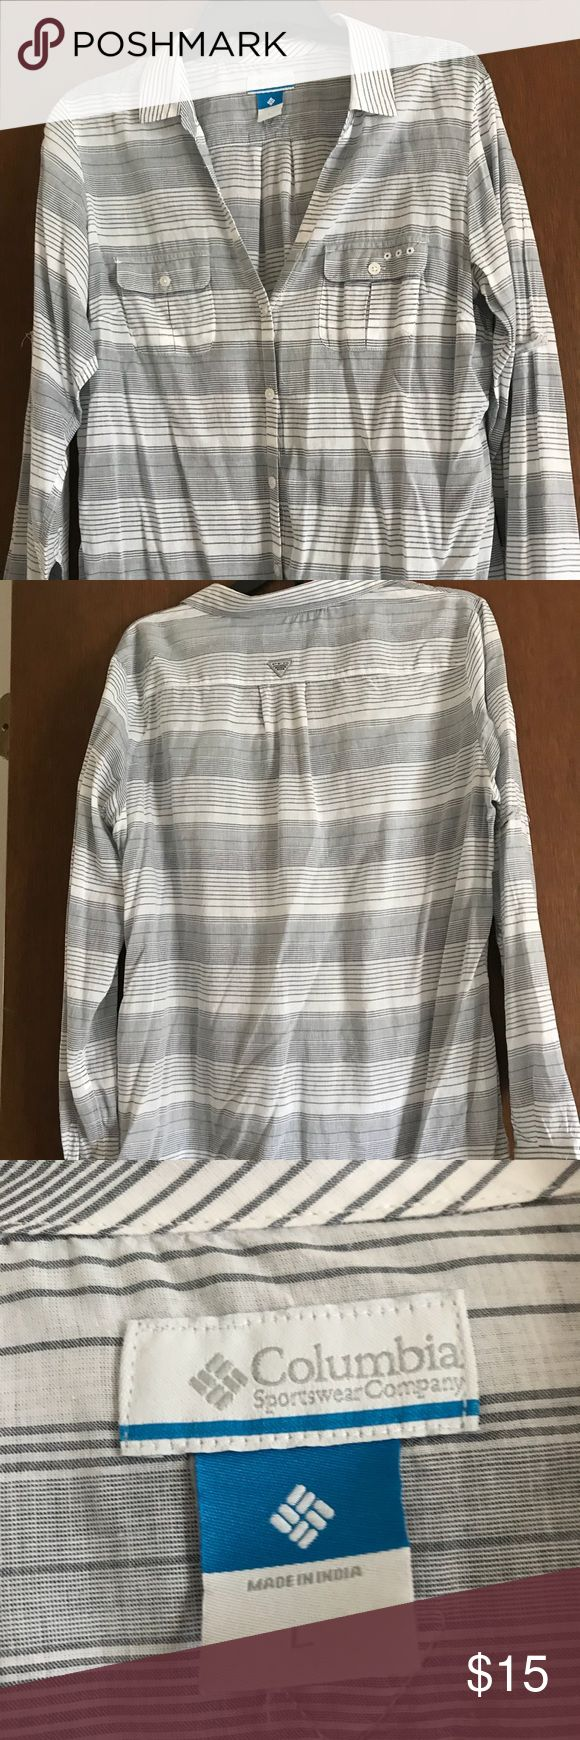 Columbia Women's PFG shirt.  Size large. Columbia Women's PFG large shirt.  Black and White.  Size large.  Great condition. Columbia Tops Blouses